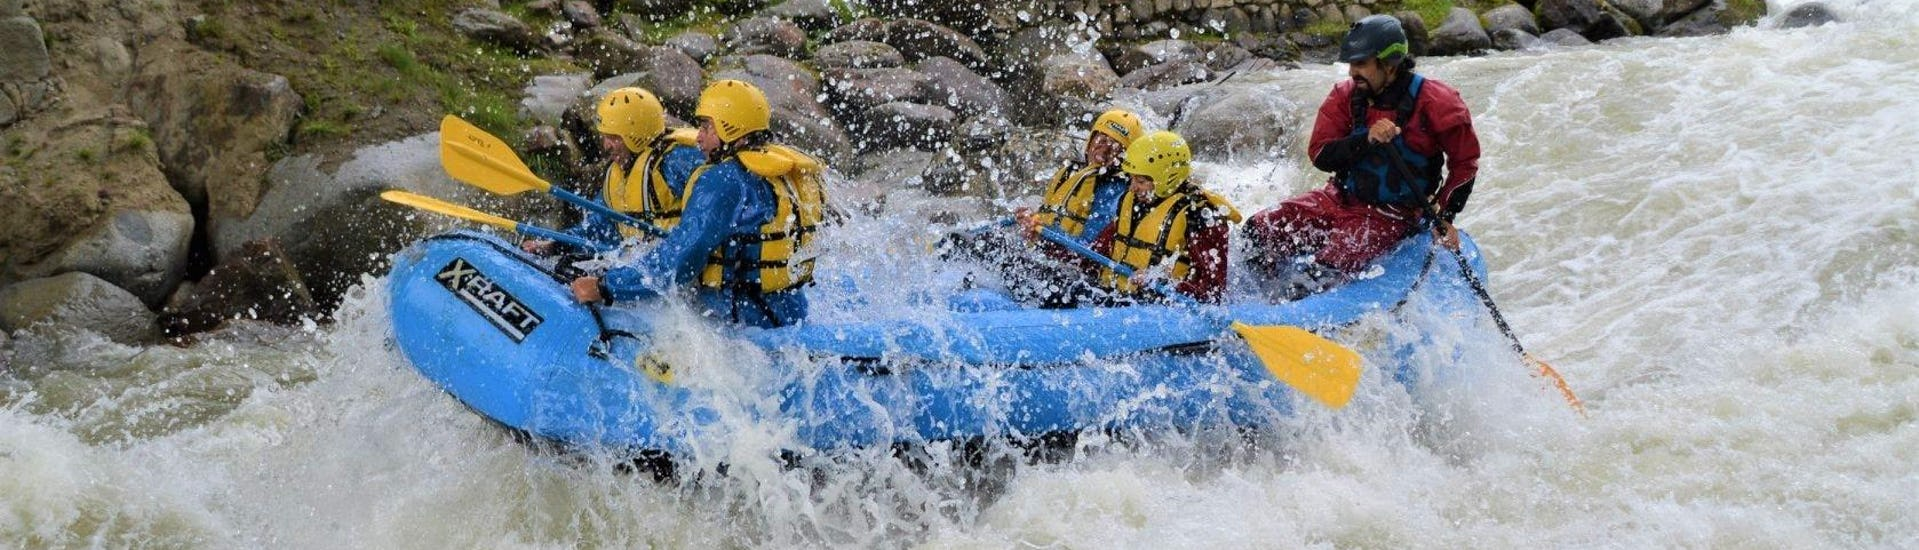 The participants of the Rafting Colorado Slalom on the river Noce are conquering the rapids while having fun during the activity organized by X Raft val di Sole.